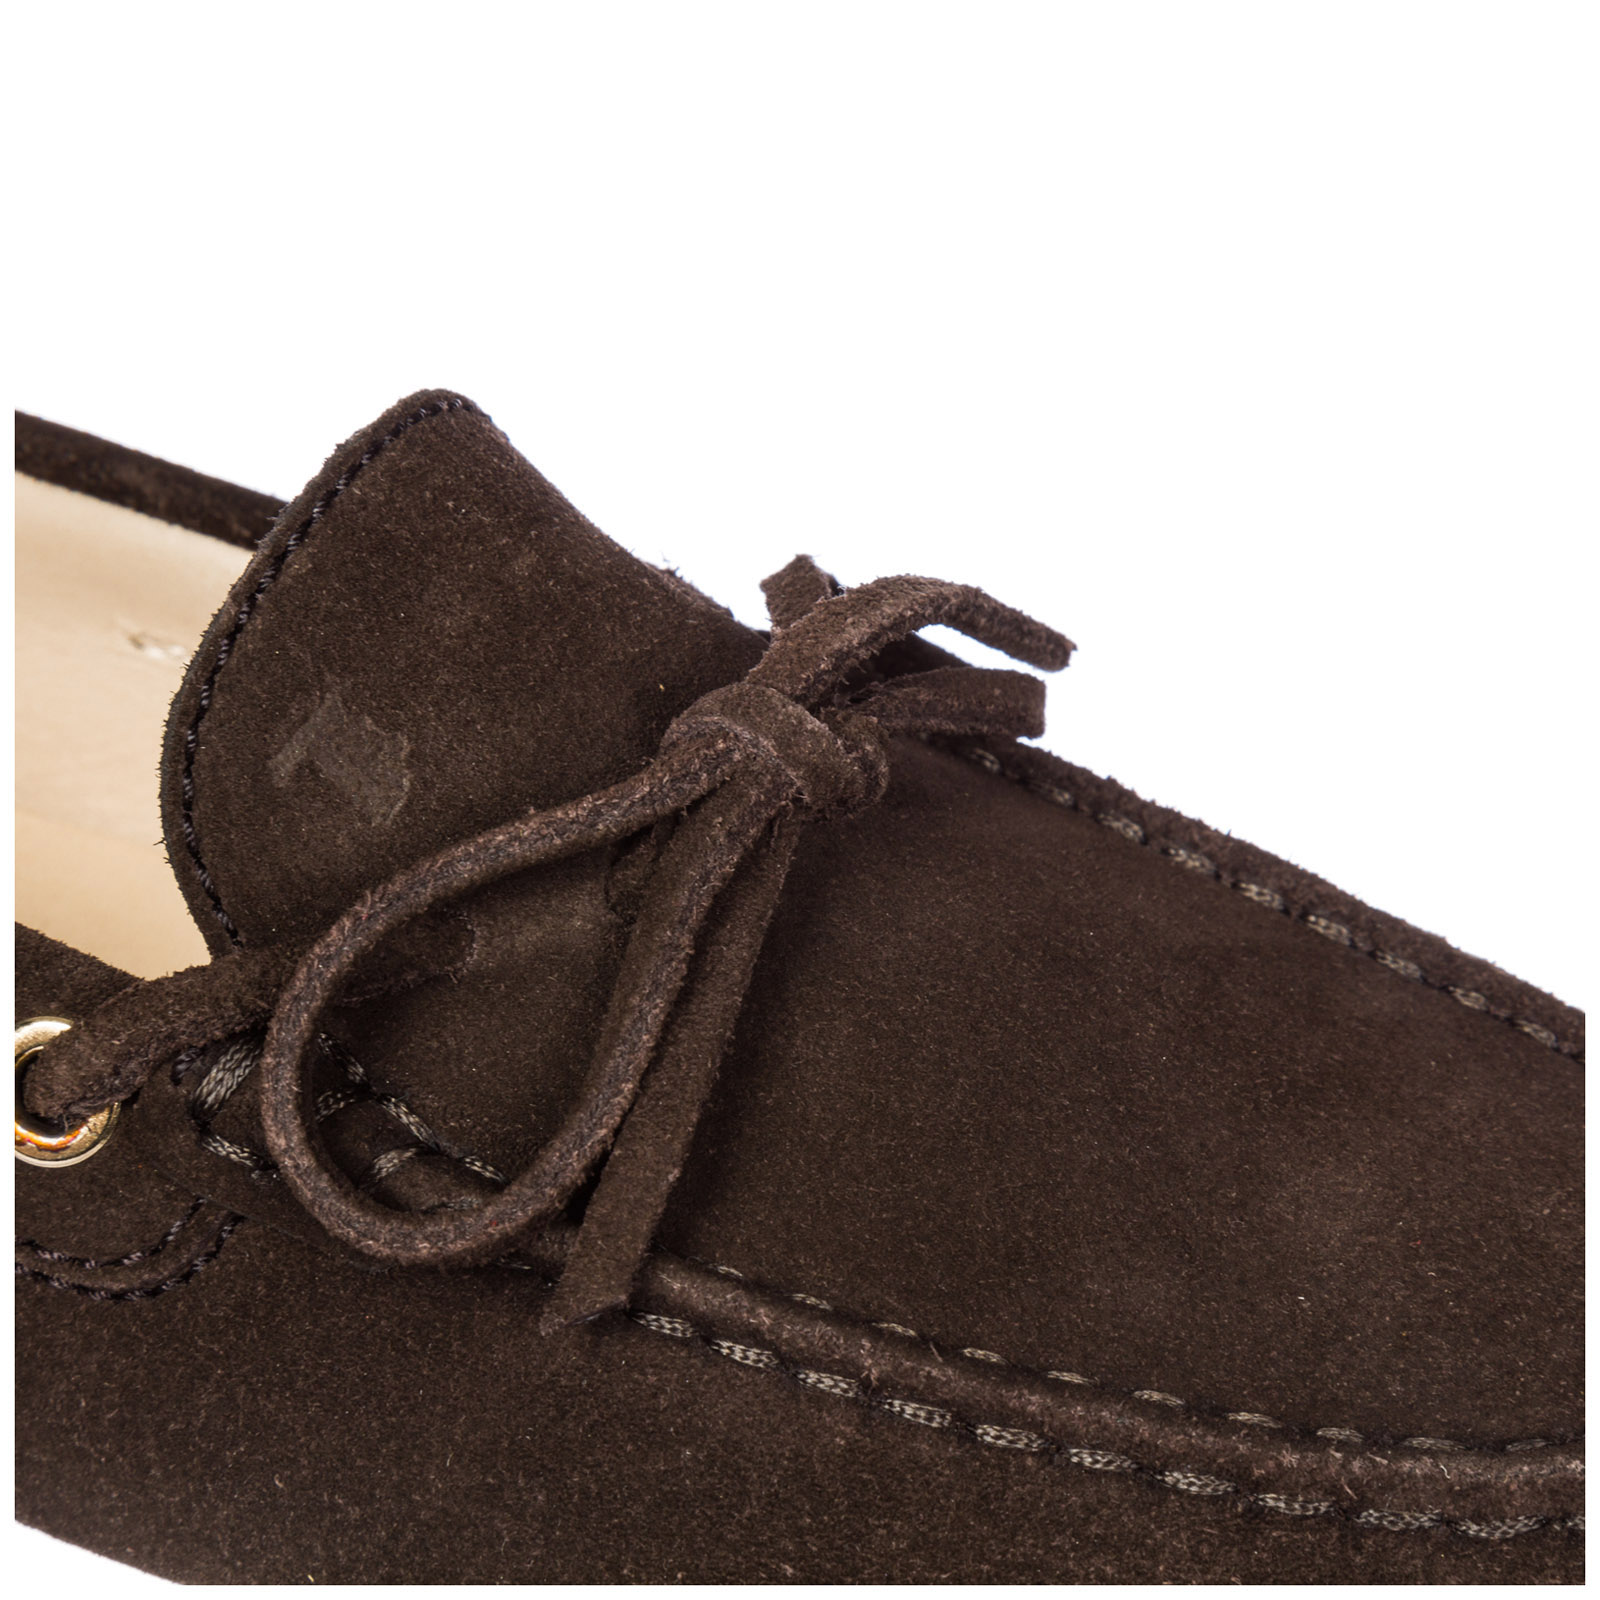 Damen wildleder mokassins slipper heaven laccetto